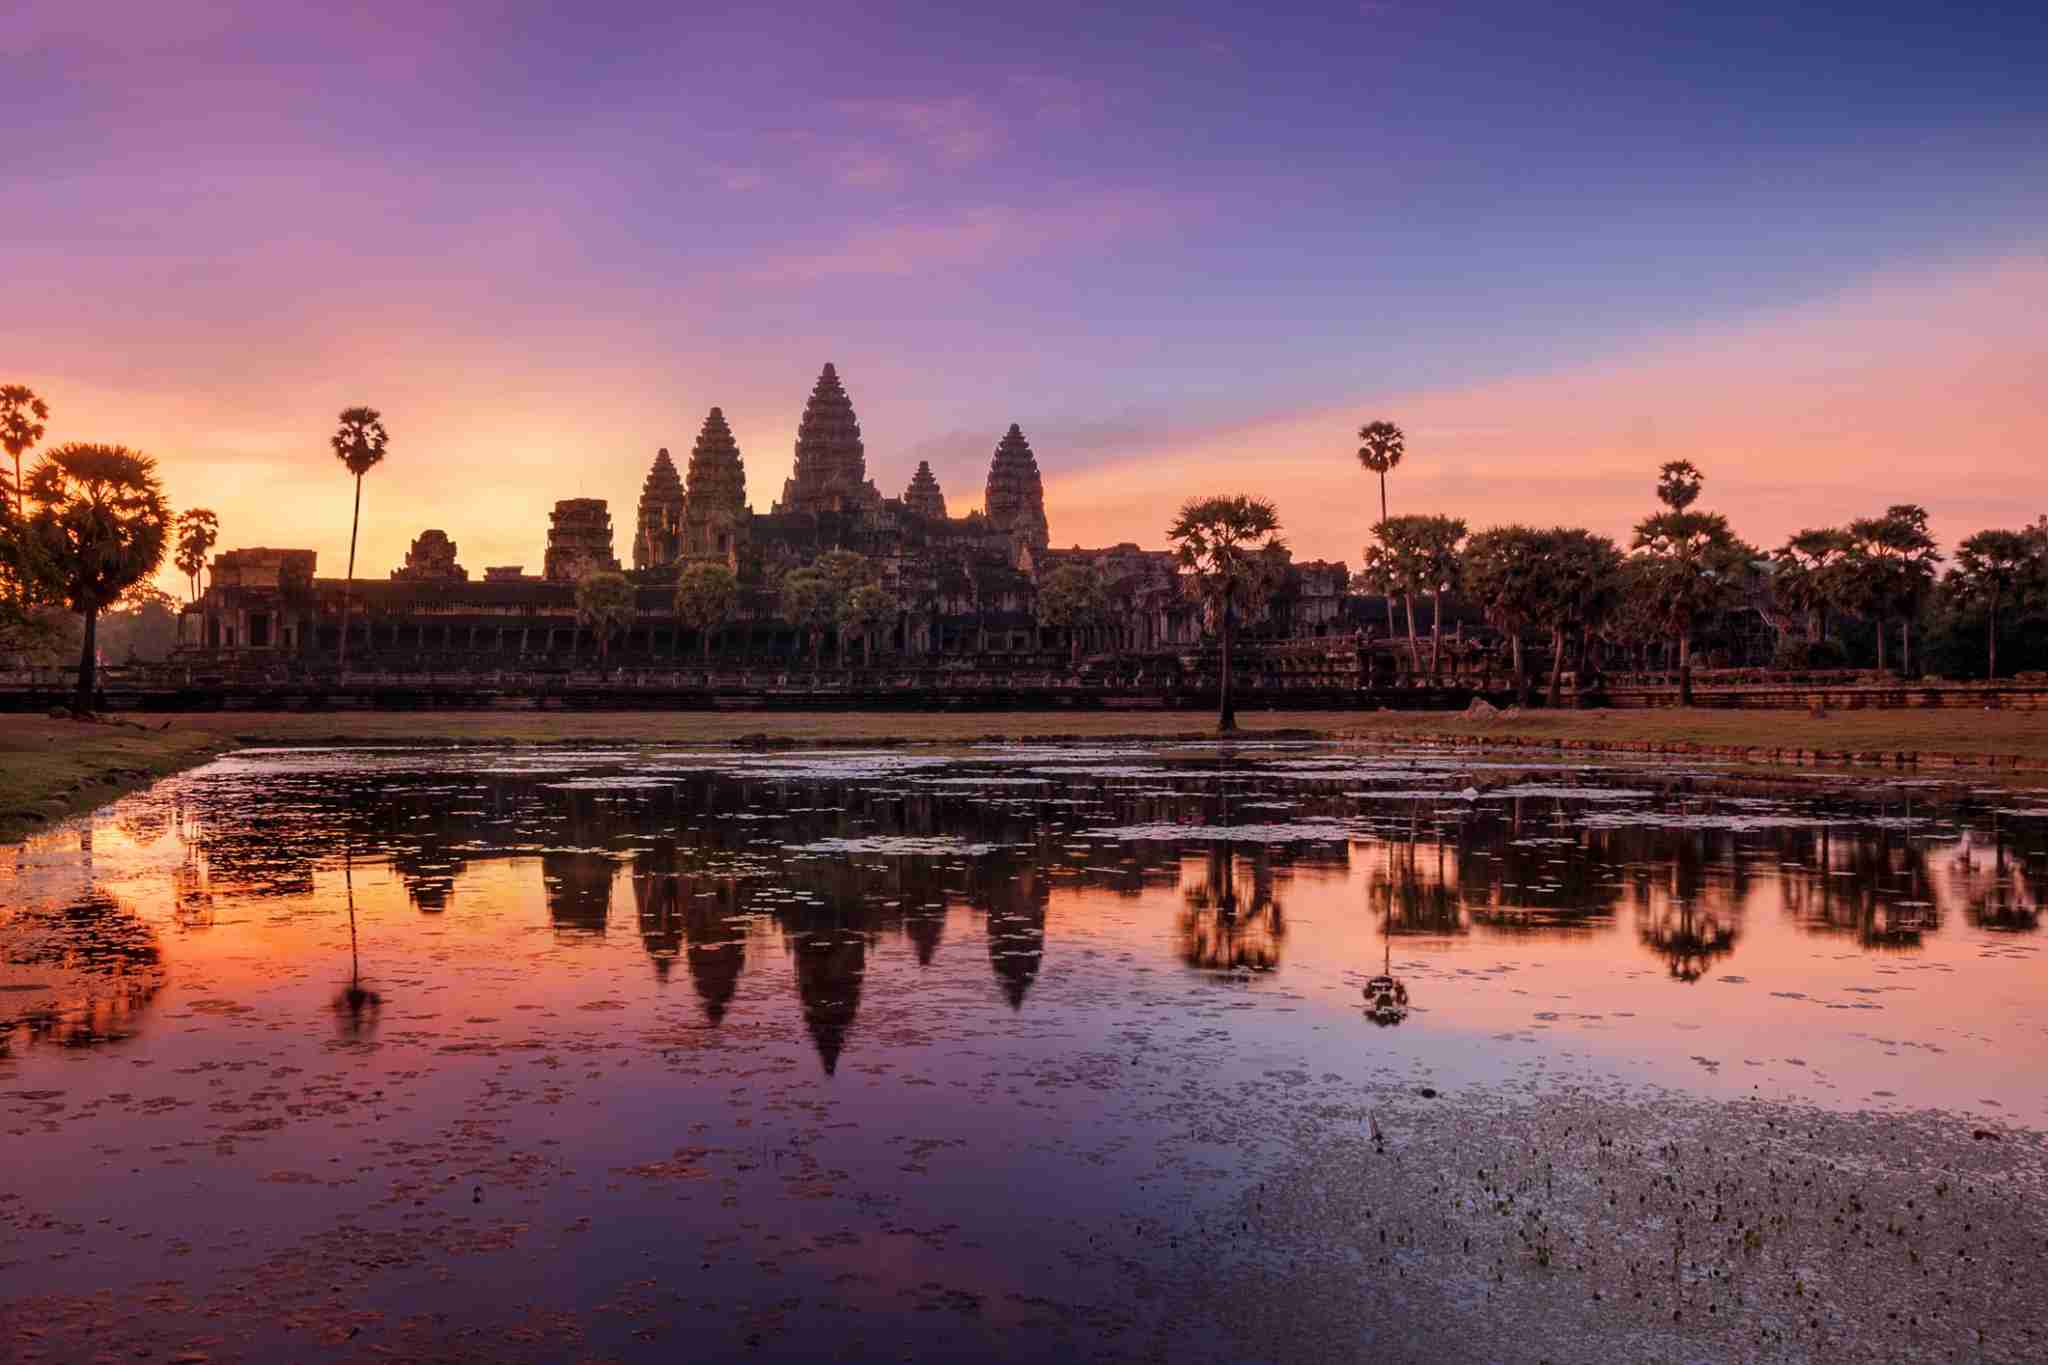 The sunrise at Angkor Wat. Photo by artherng/Getty